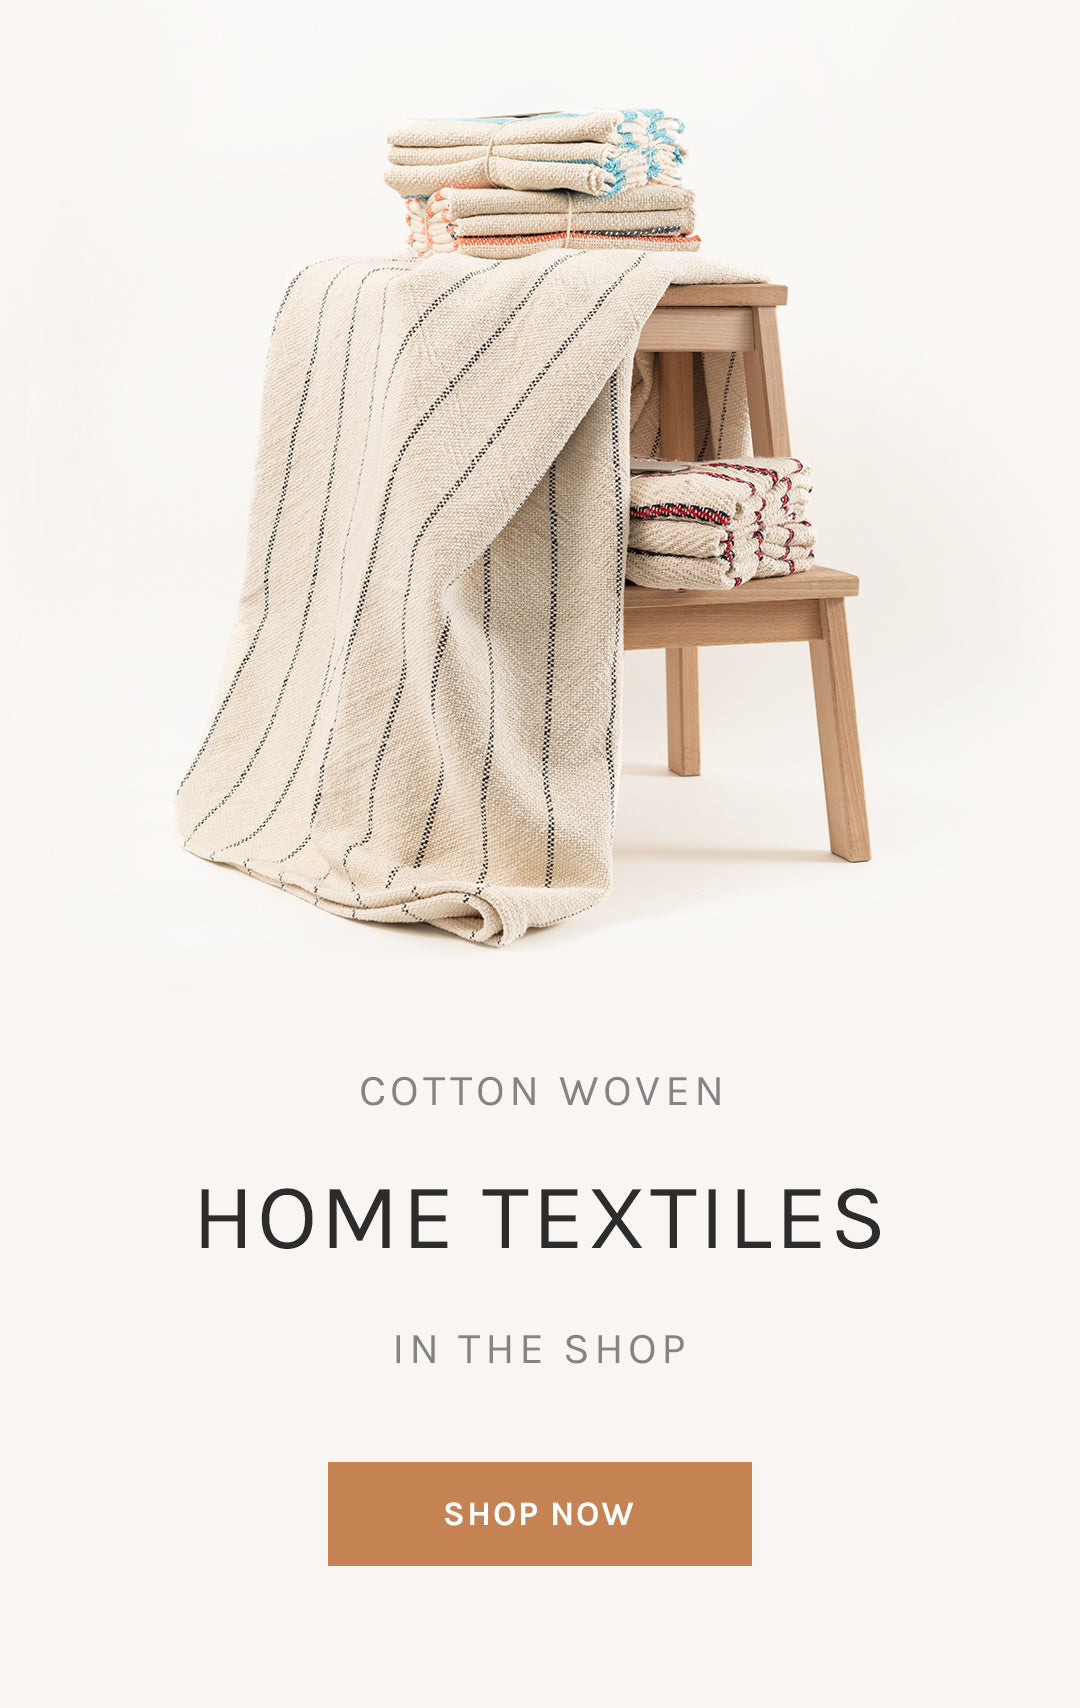 Cotton Woven Home Textiles in the Shop